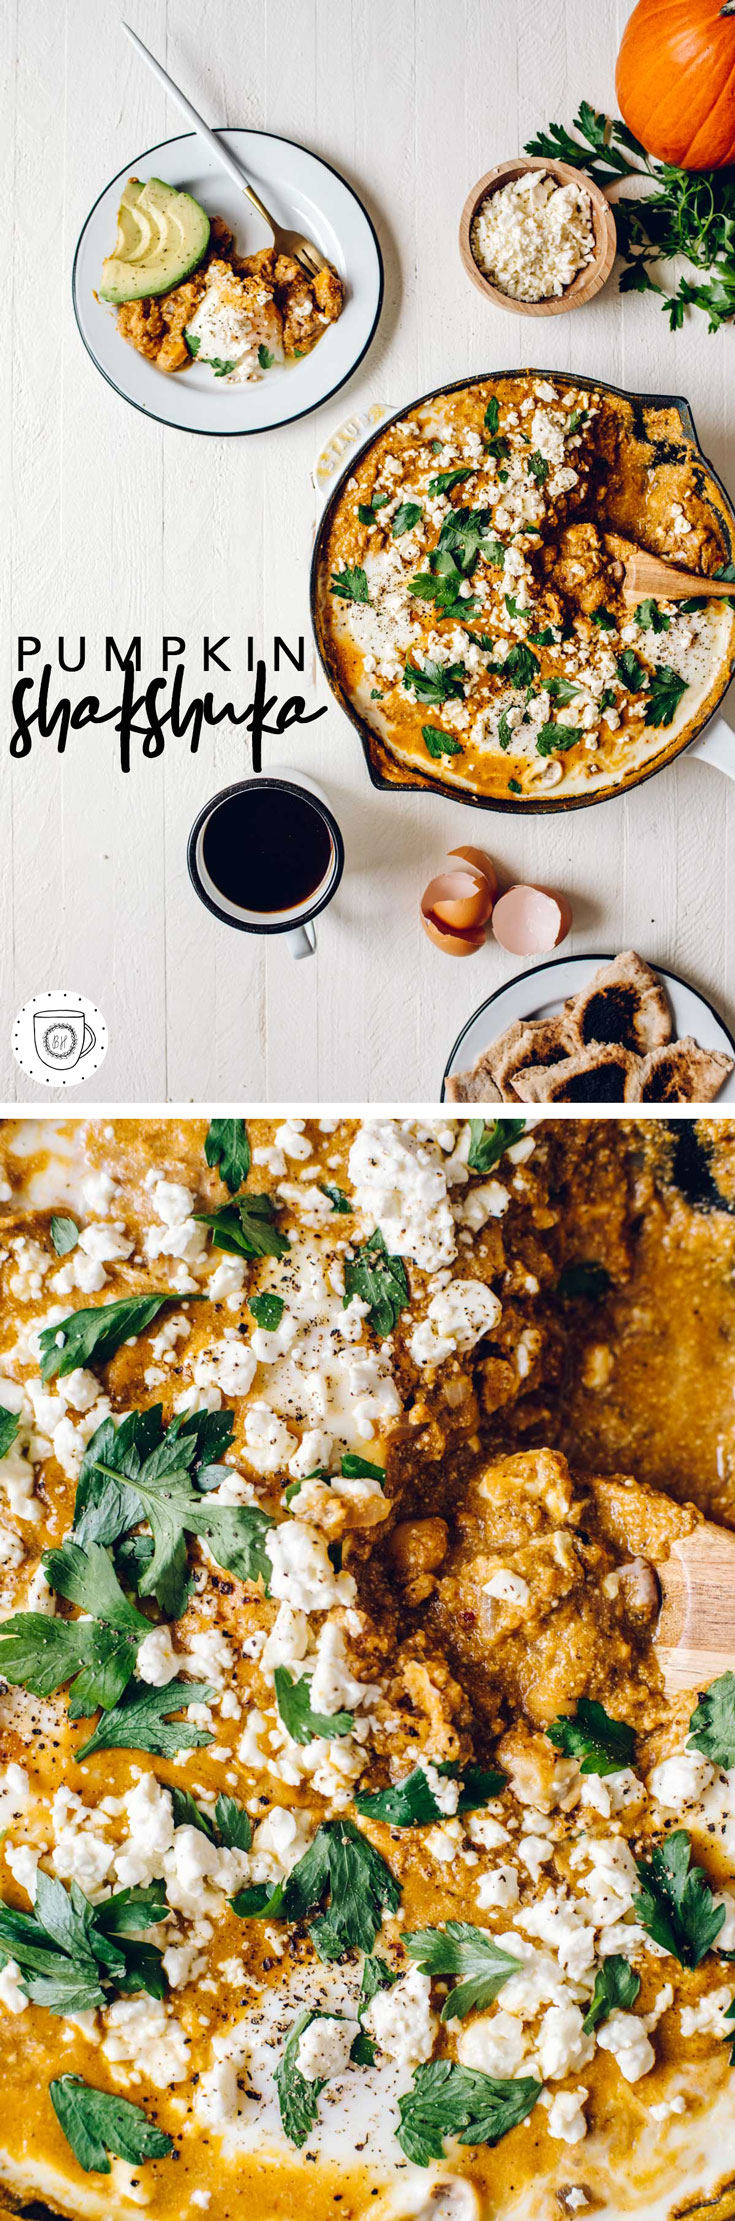 This pumpkin shakshuka is a seasonal spin on the Middle Eastern breakfast dish and a great savory way to enjoy pumpkin this fall! #shakshuka #pumpkin #vegetarian #pumpkinshakshuka | Brewing Happiness